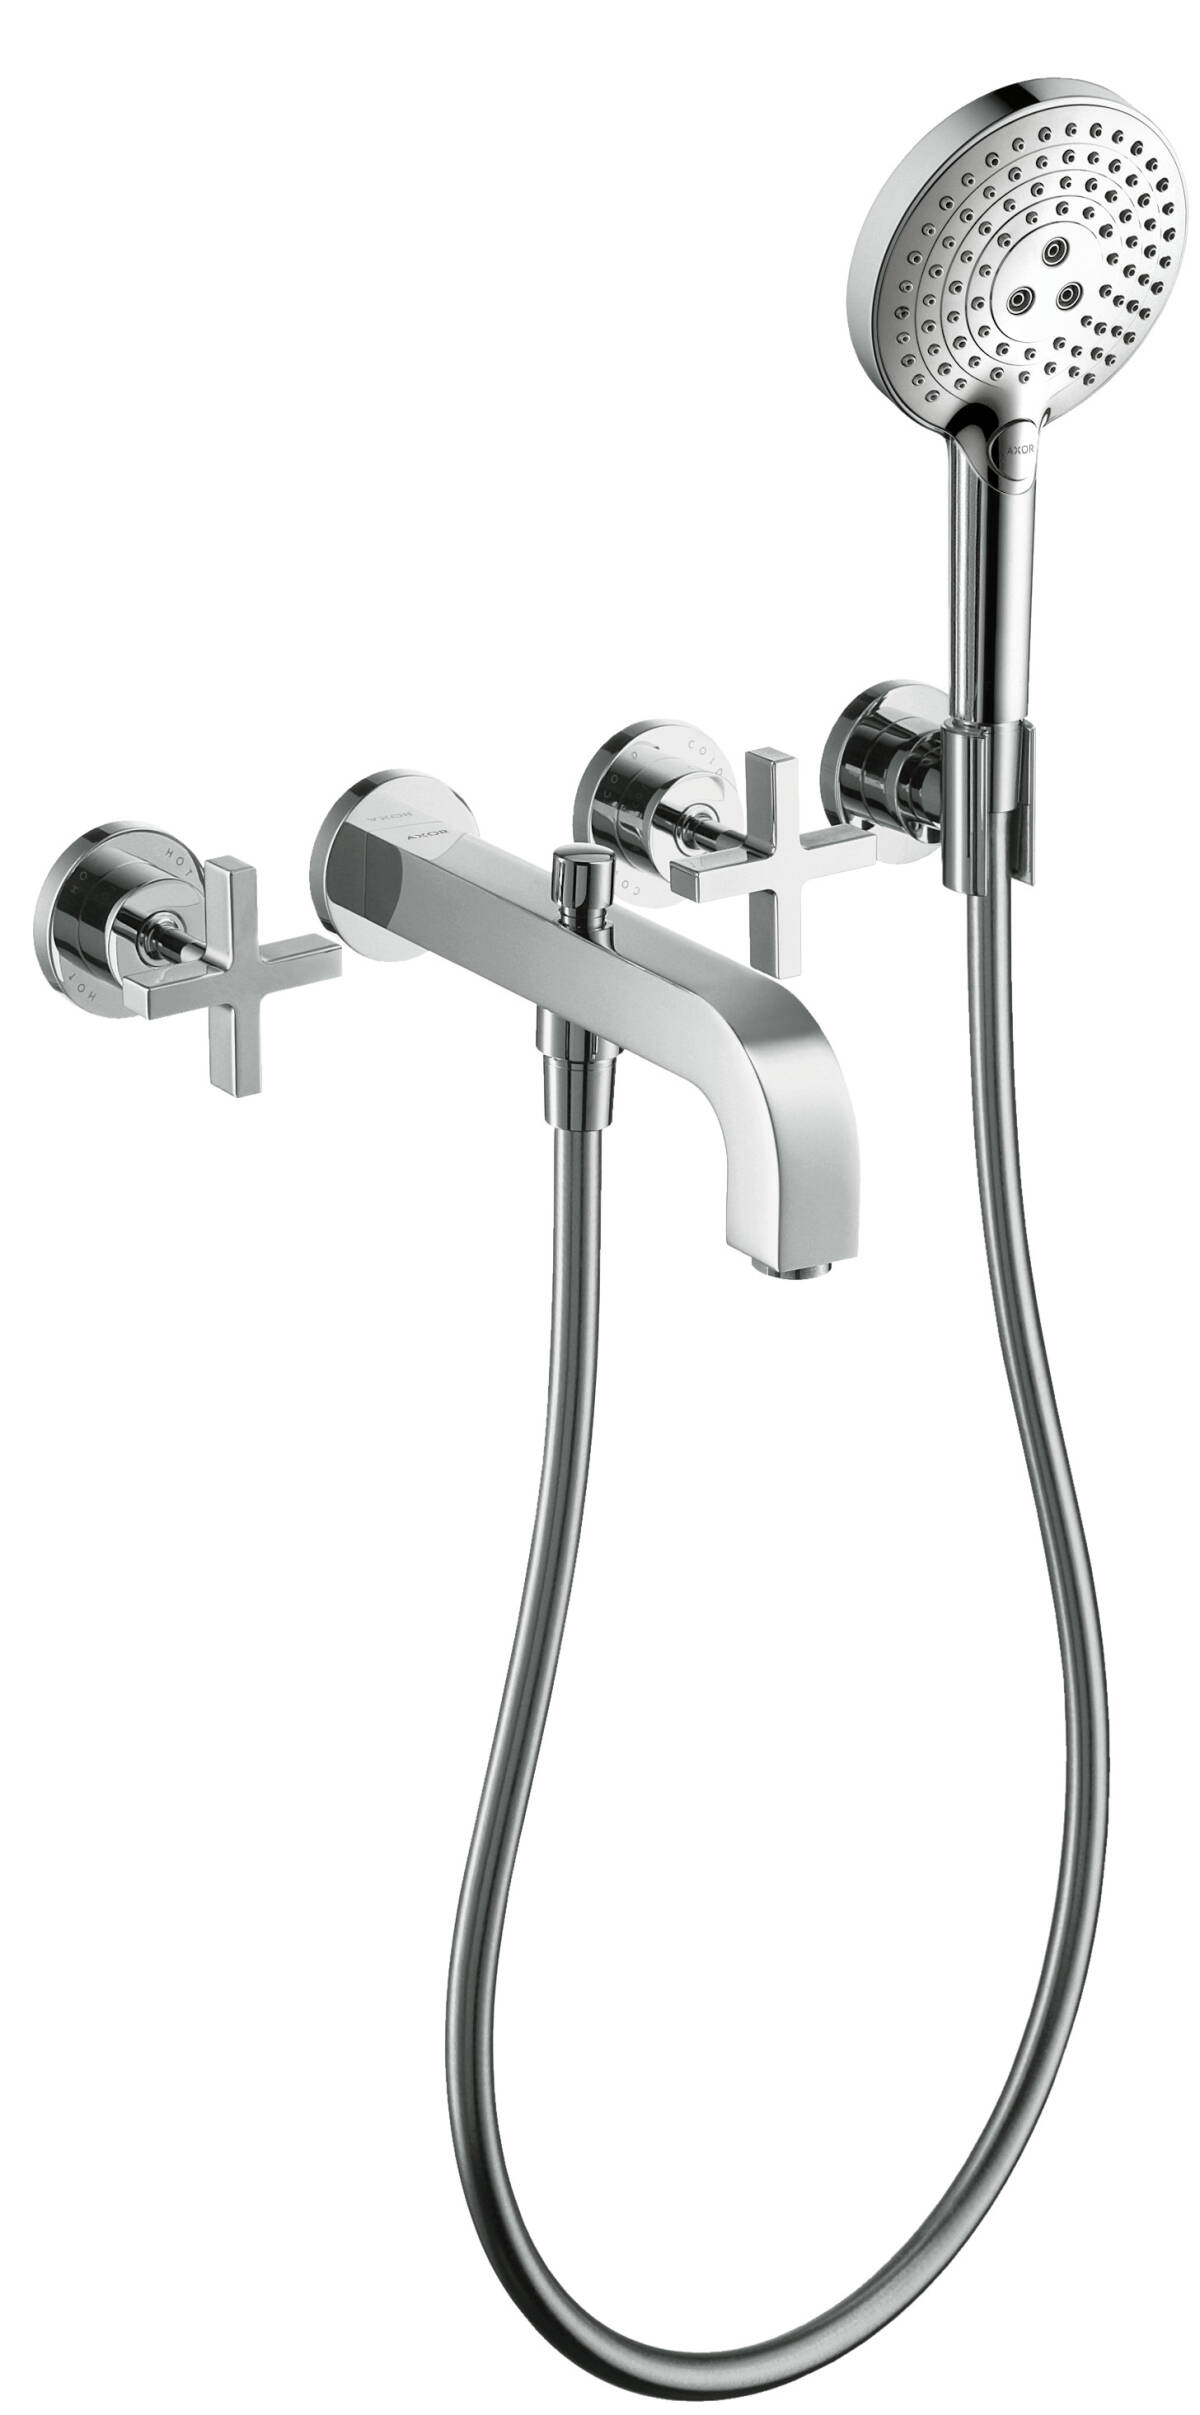 3-hole bath mixer for concealed installation wall-mounted with cross handles and escutcheons, Polished Nickel, 39447830